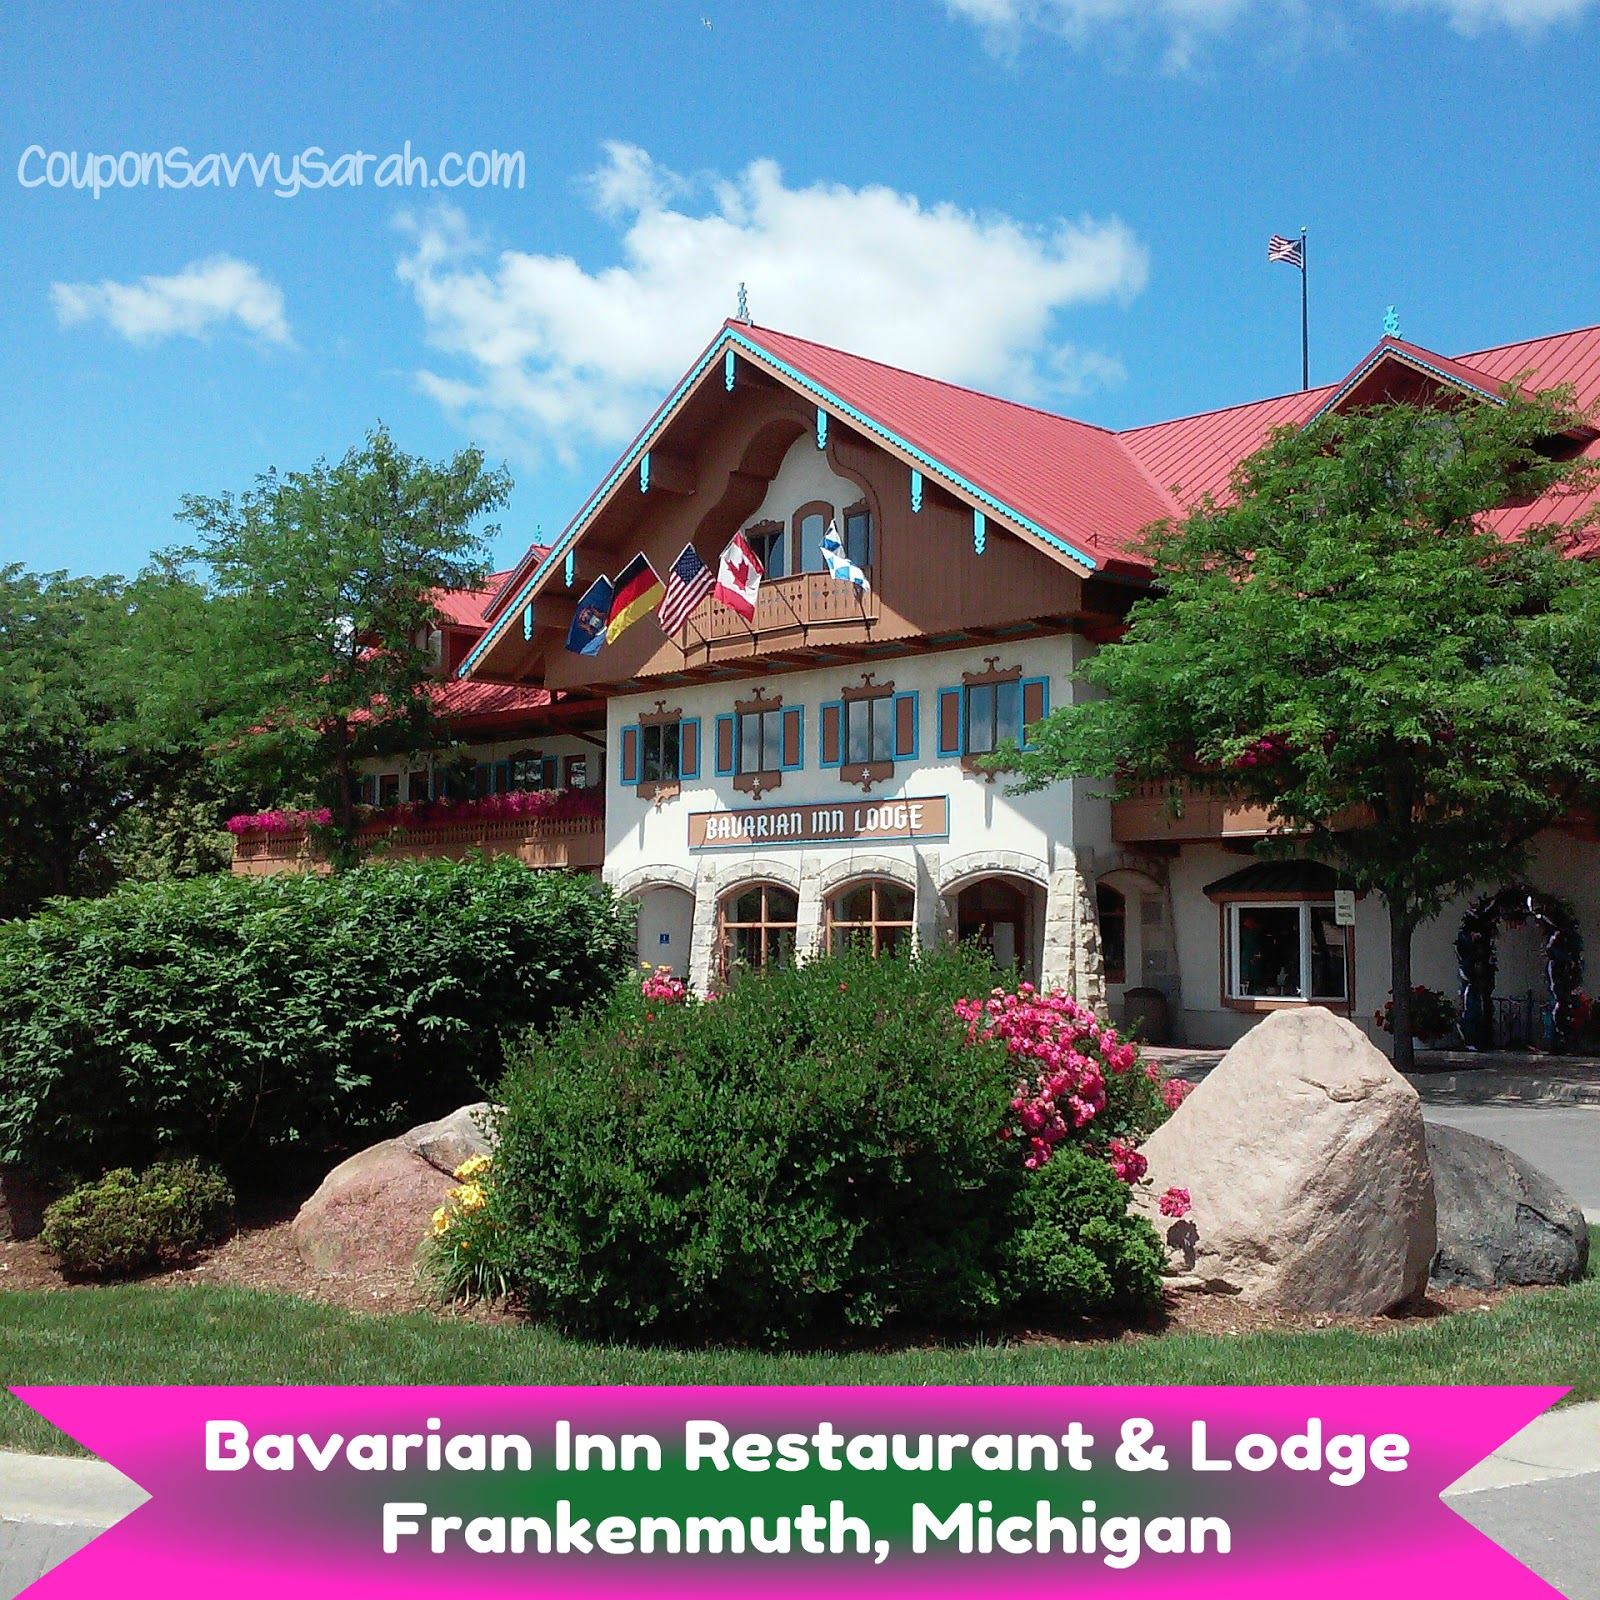 Bavarian inn restaurant coupons